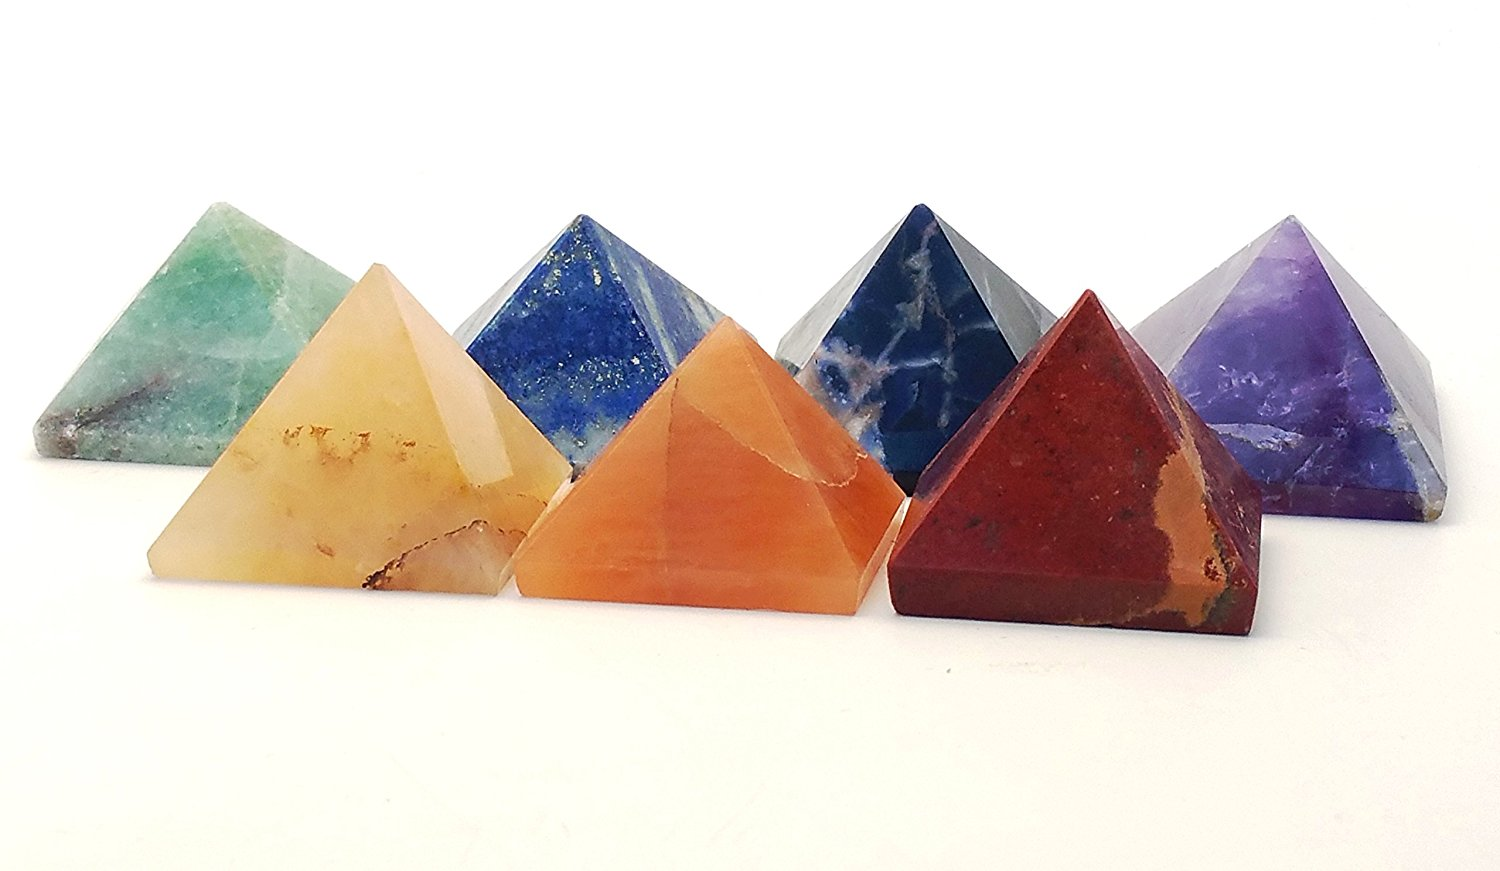 engraved-chakra-crystal-reiki-pyramids-100-natural-7-stone-set-in-gift-pouch-perfect-for-crystal-grids-and-meditation